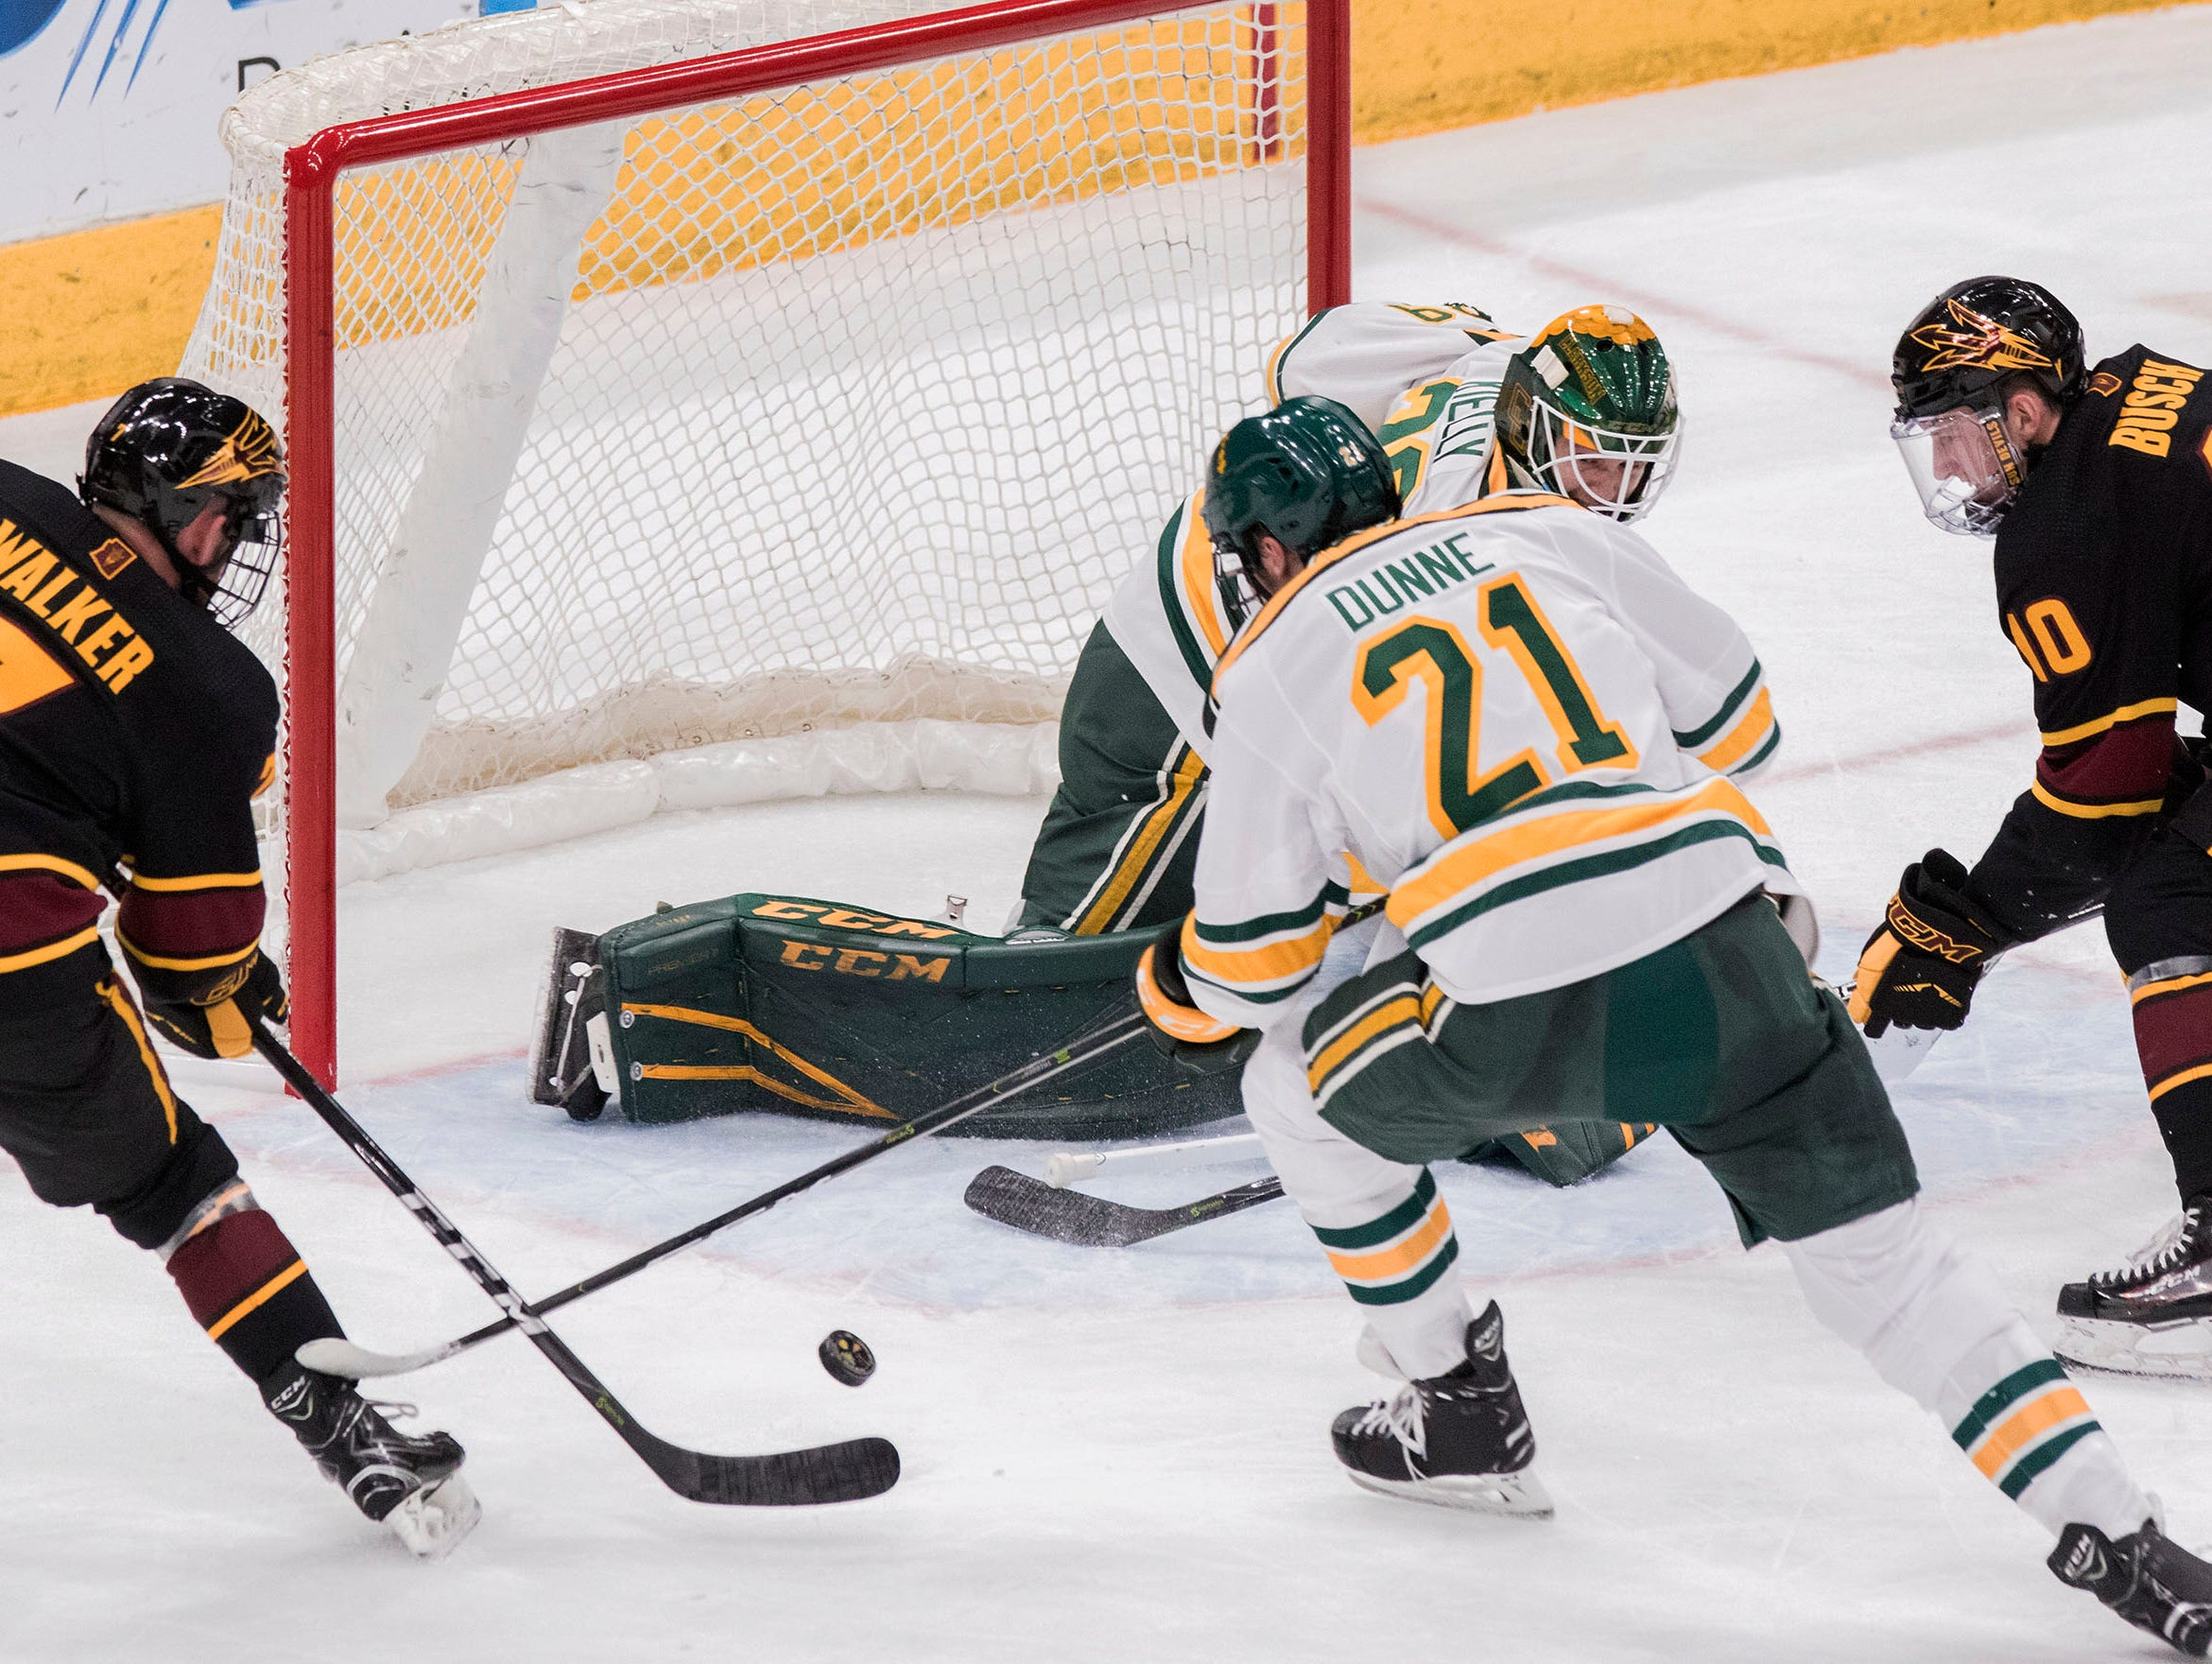 Arizona State University's Johnny Walker (7) just misses getting a shot off Clarkson's goalie Jake Kielly (28) during the first period of their game in the 2018 Desert Hockey Classic in Glendale, Friday, Dec. 28, 2018.